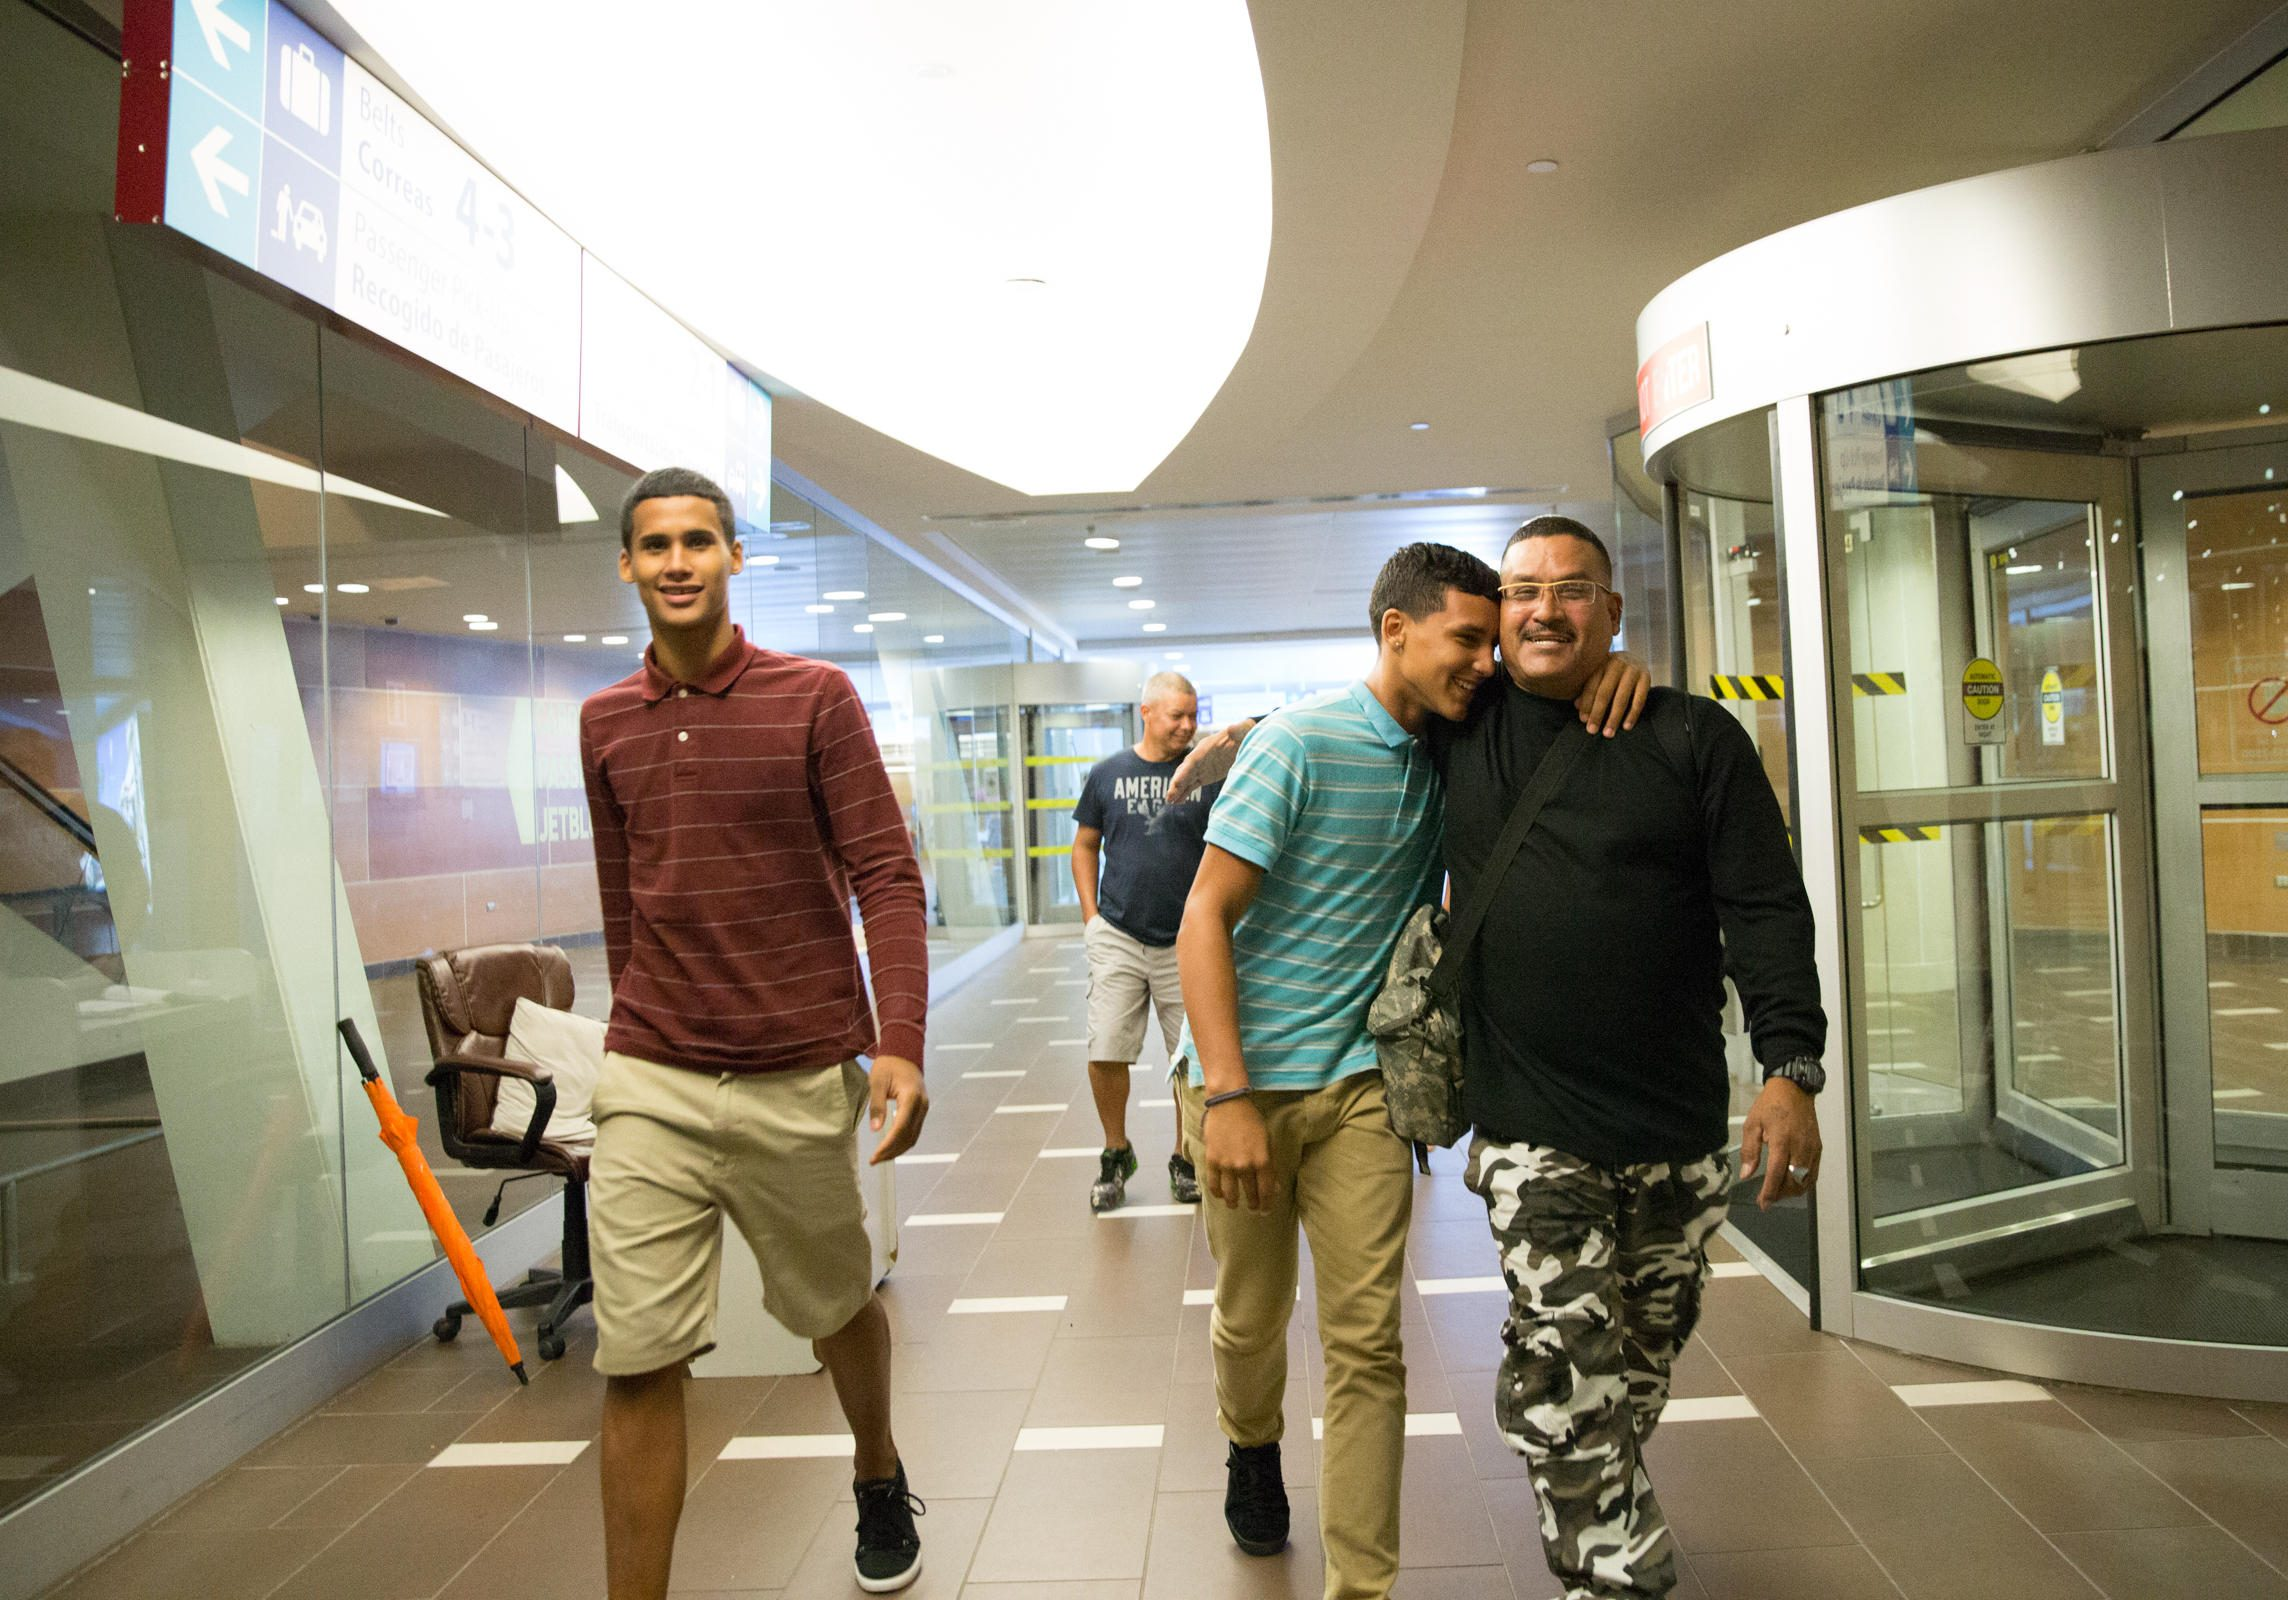 Guillermo Class reunites with his two sons in the San Juan Airport. He sold his car to fly them back to Hartford. Photo by Ryan Caron King for WNPR